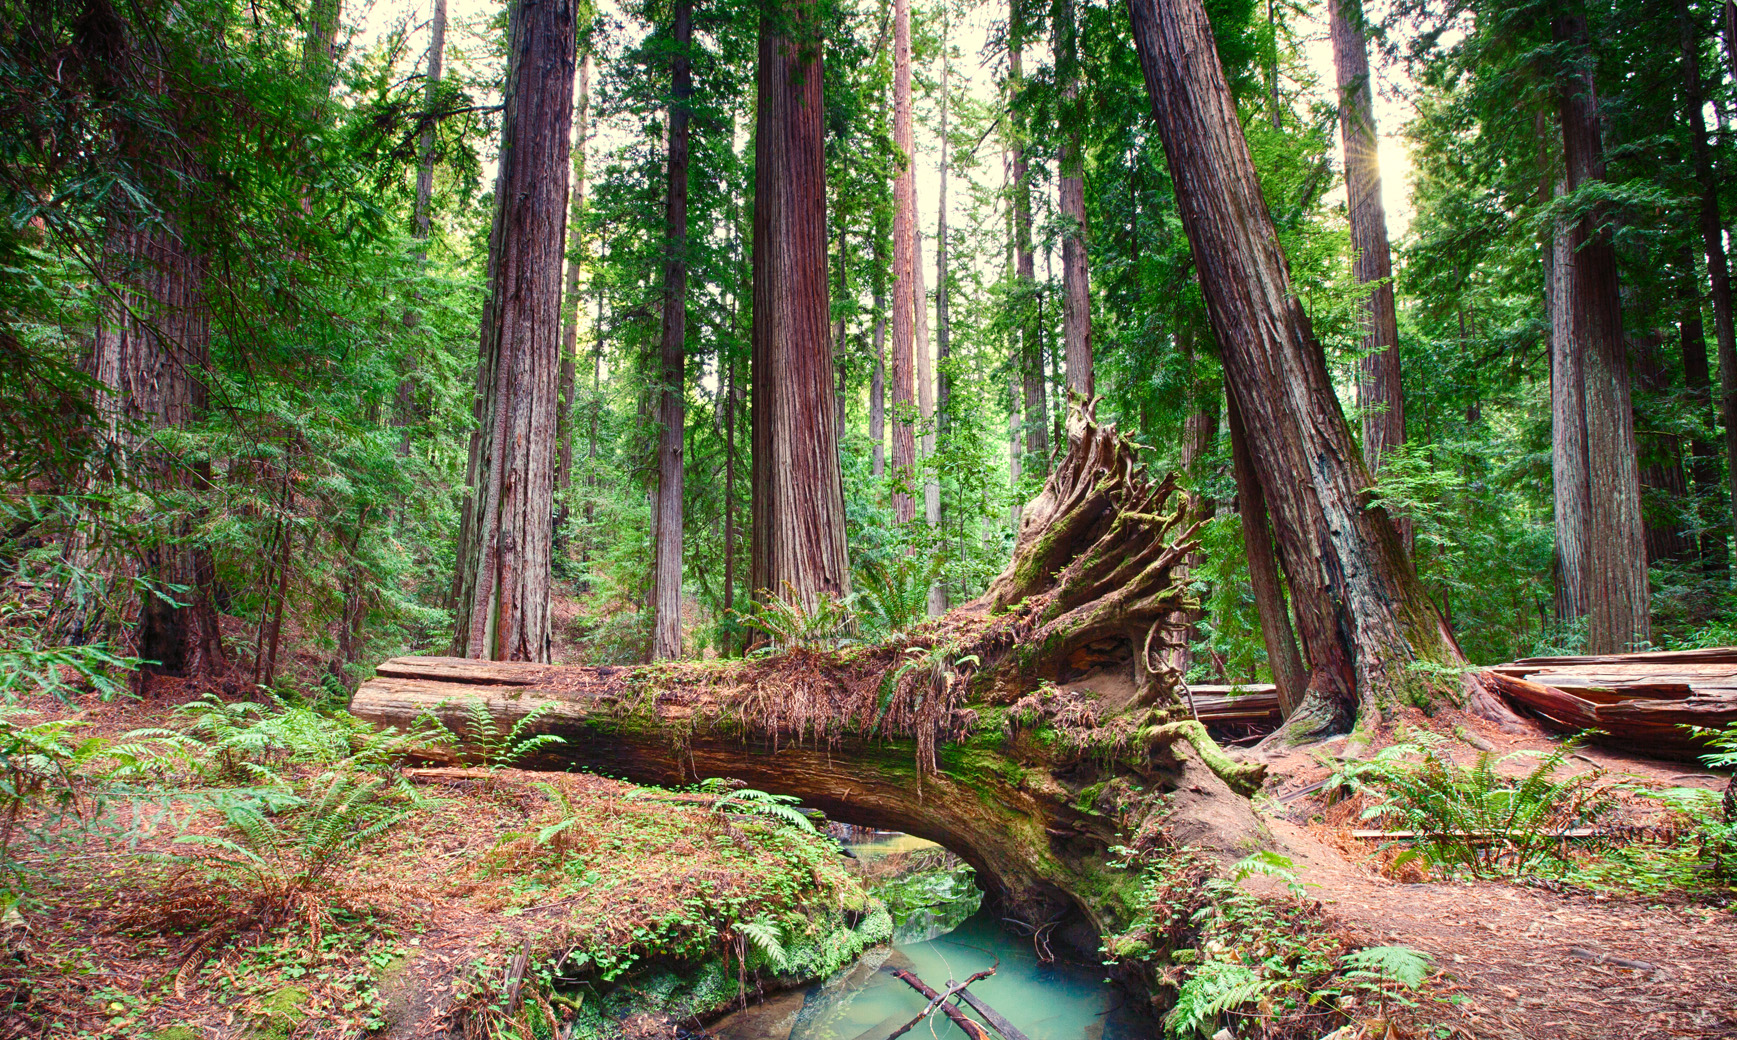 Montgomery Woods is a beautiful old growth redwood forest. Photo by June Ruckman